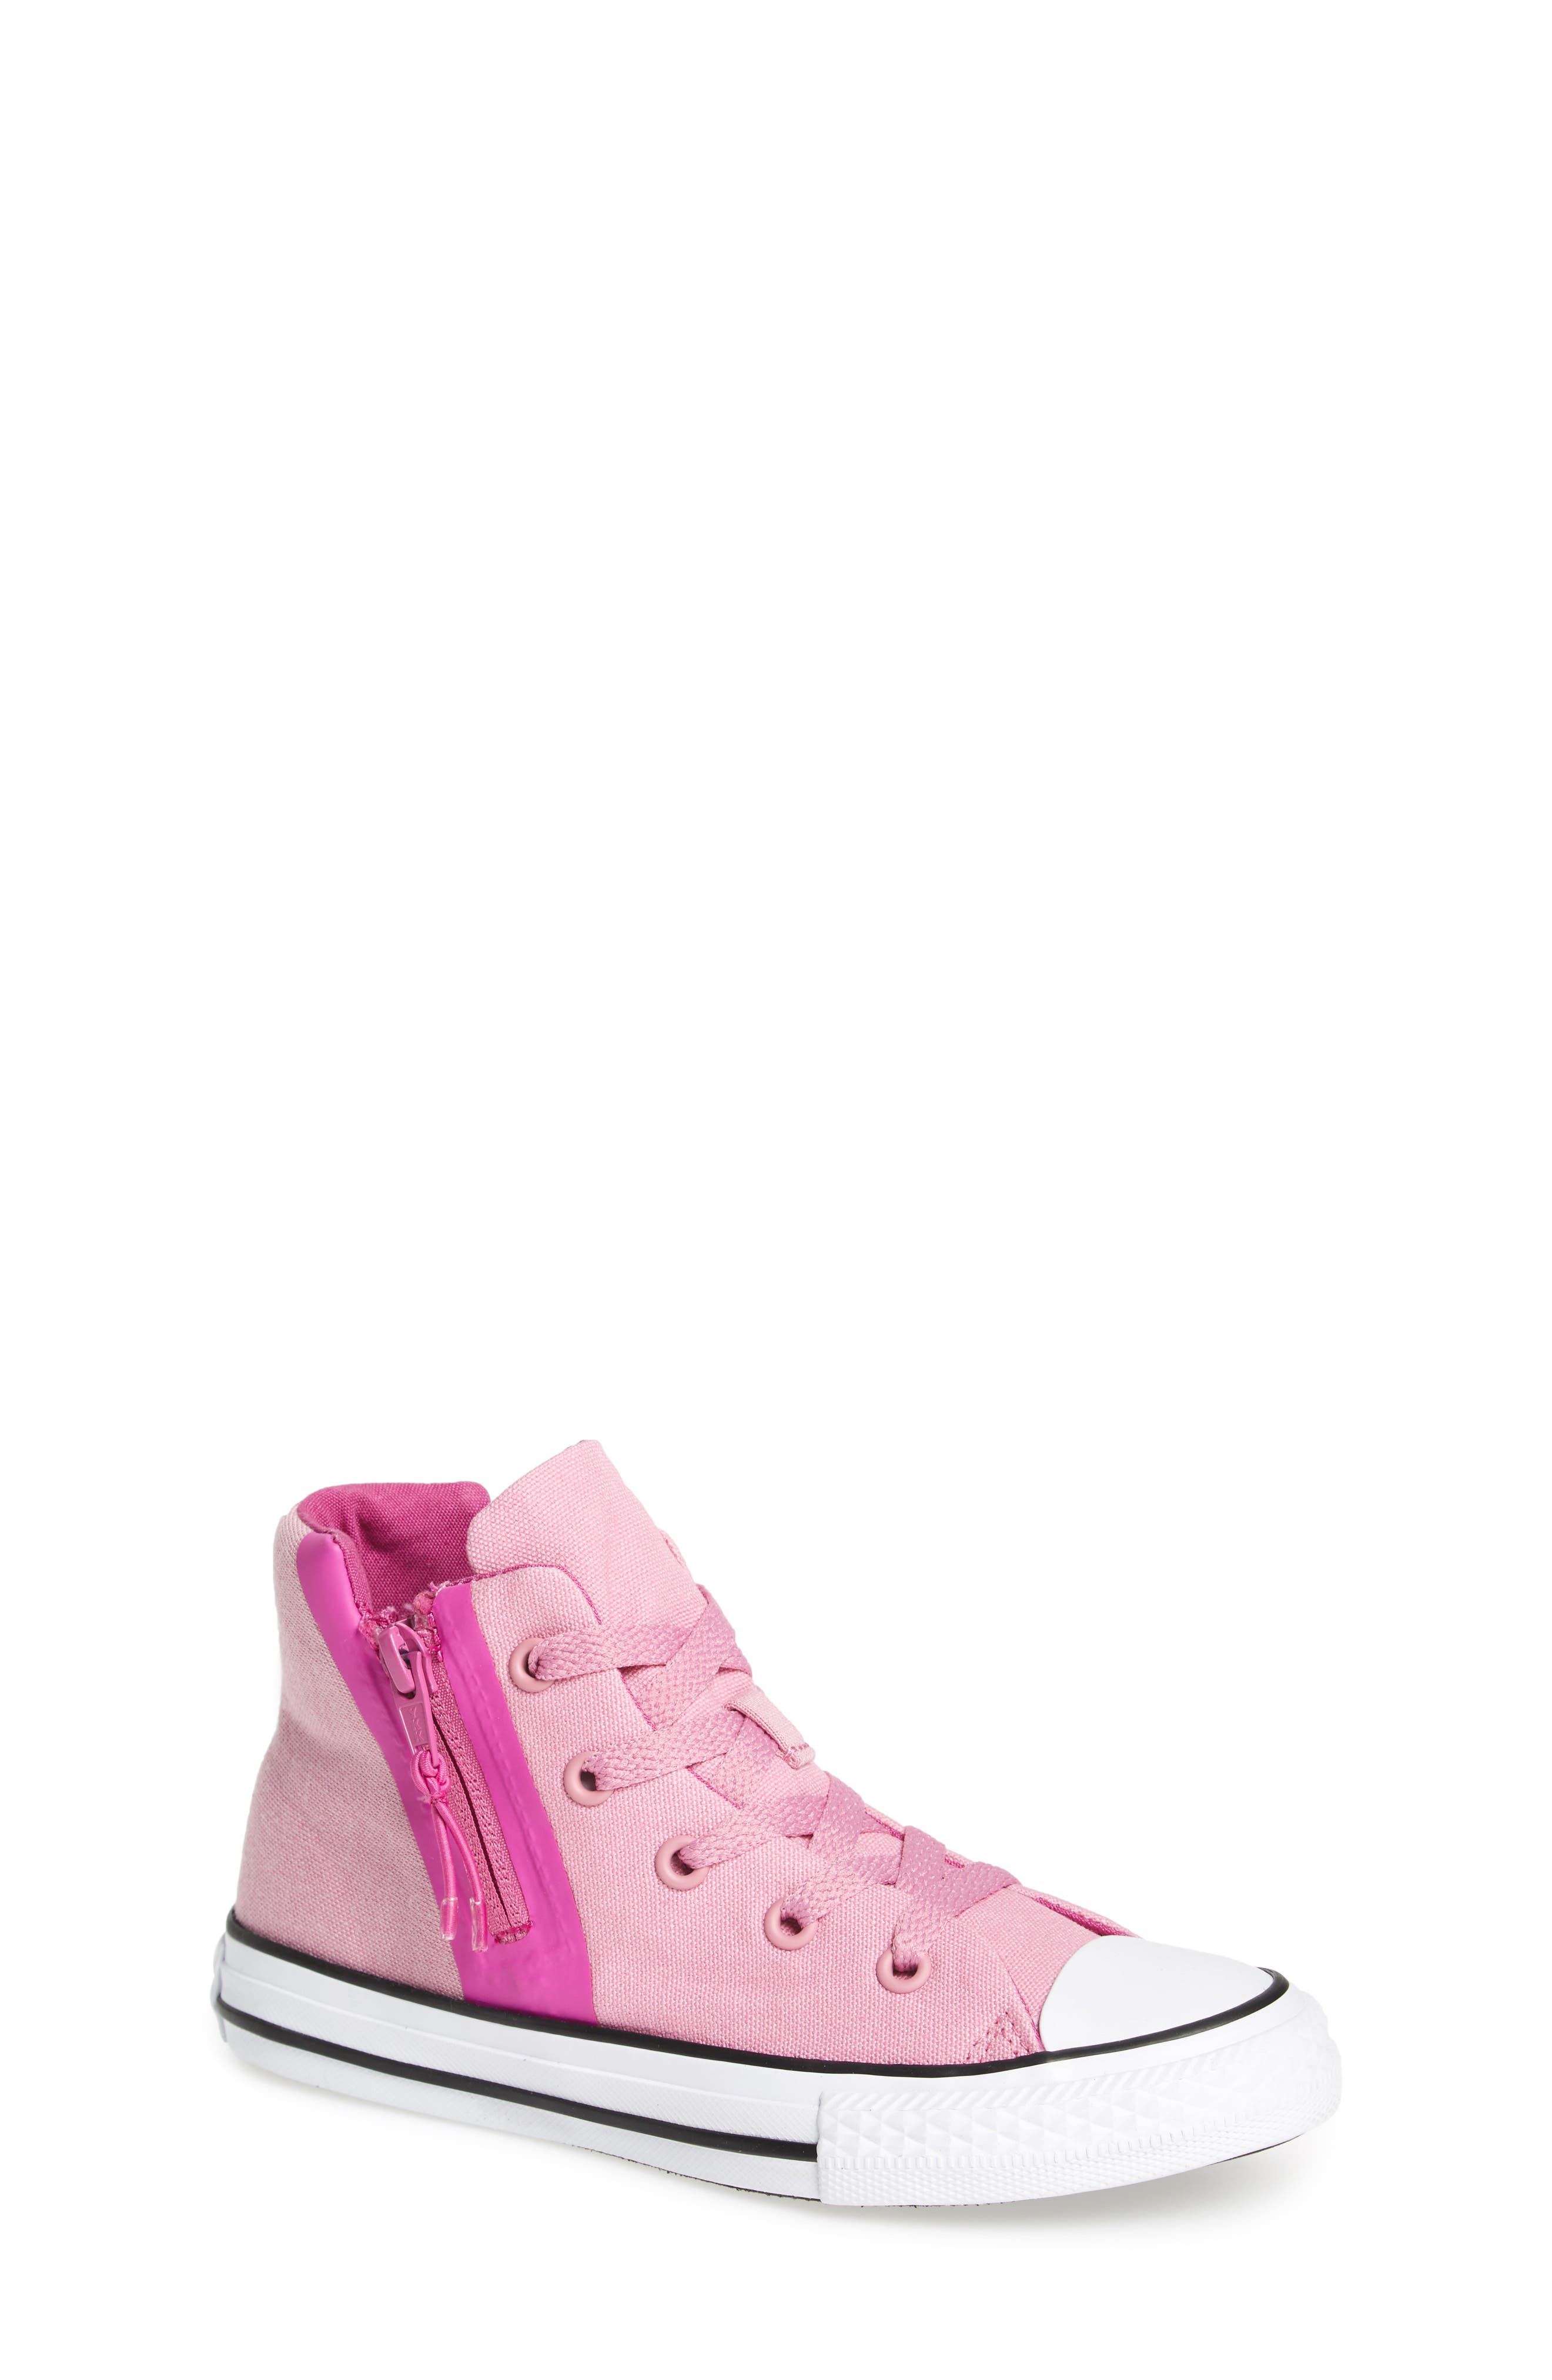 Chuck Taylor<sup>®</sup> All Star<sup>®</sup> Sport Zip High Top Sneaker,                         Main,                         color,